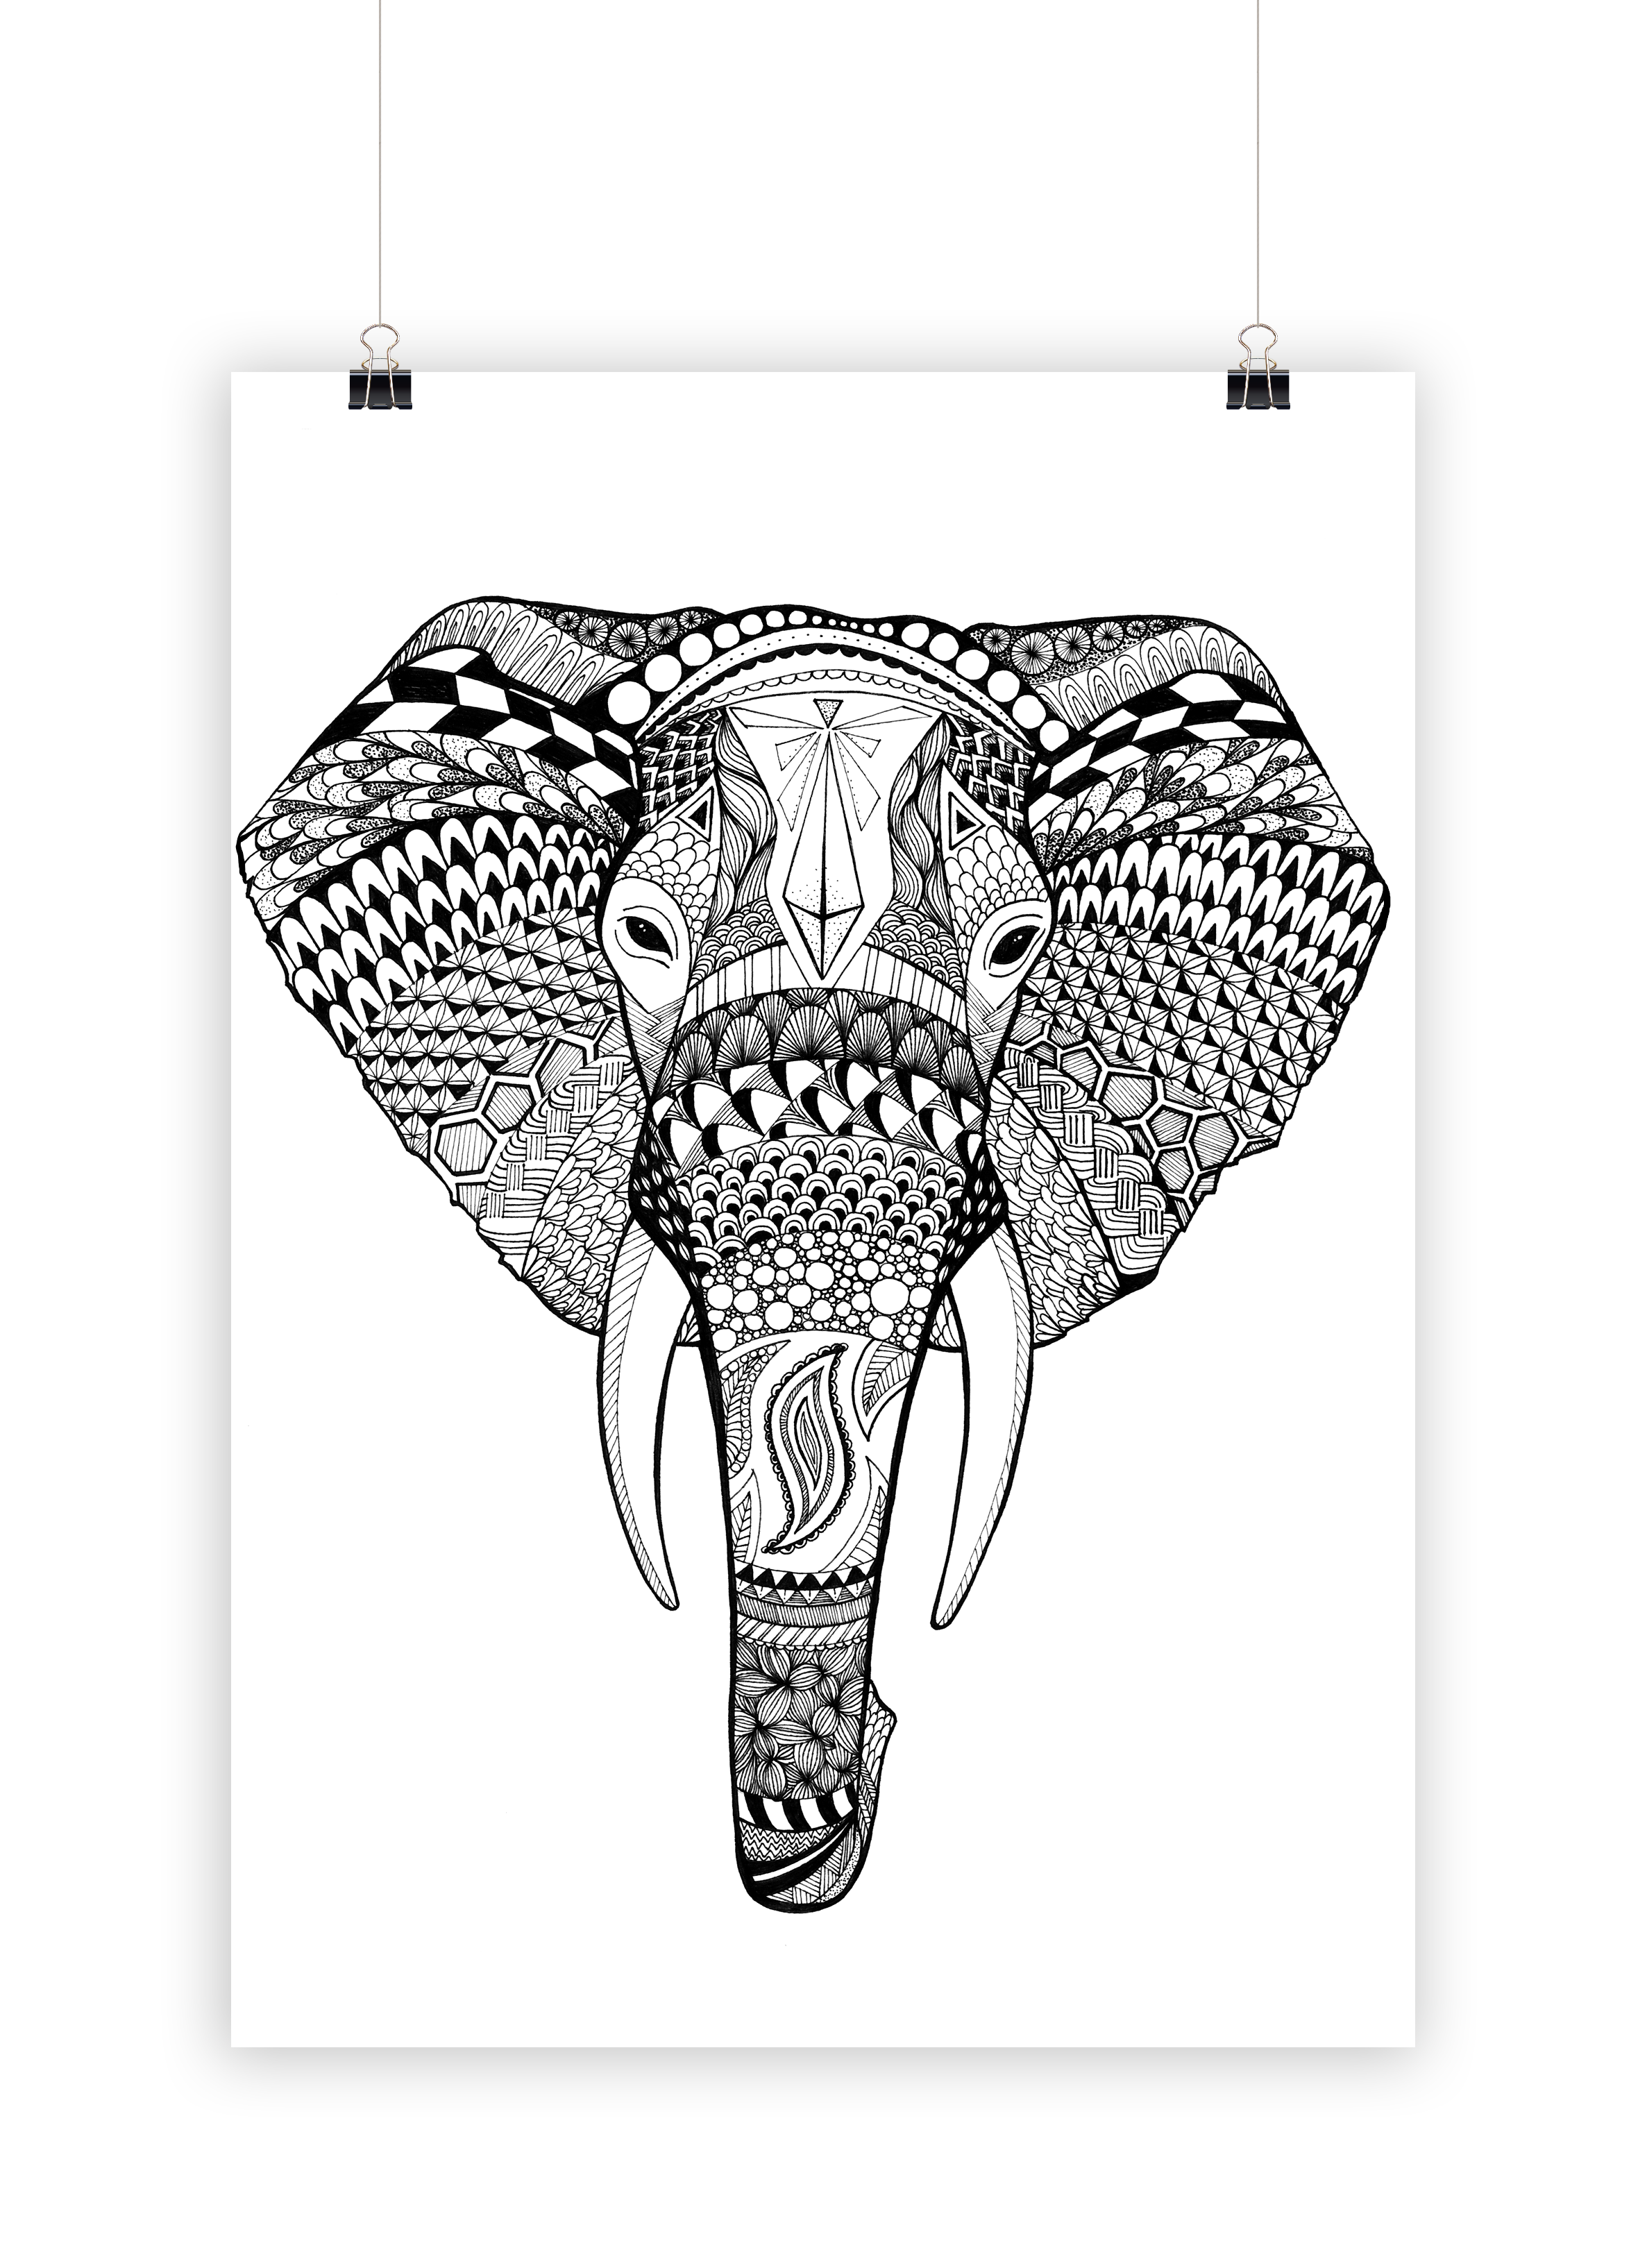 Zentangle Elefant Vorlage Pin Von Rupesh Mahabare Auf Ganpati Tattoos In 2019